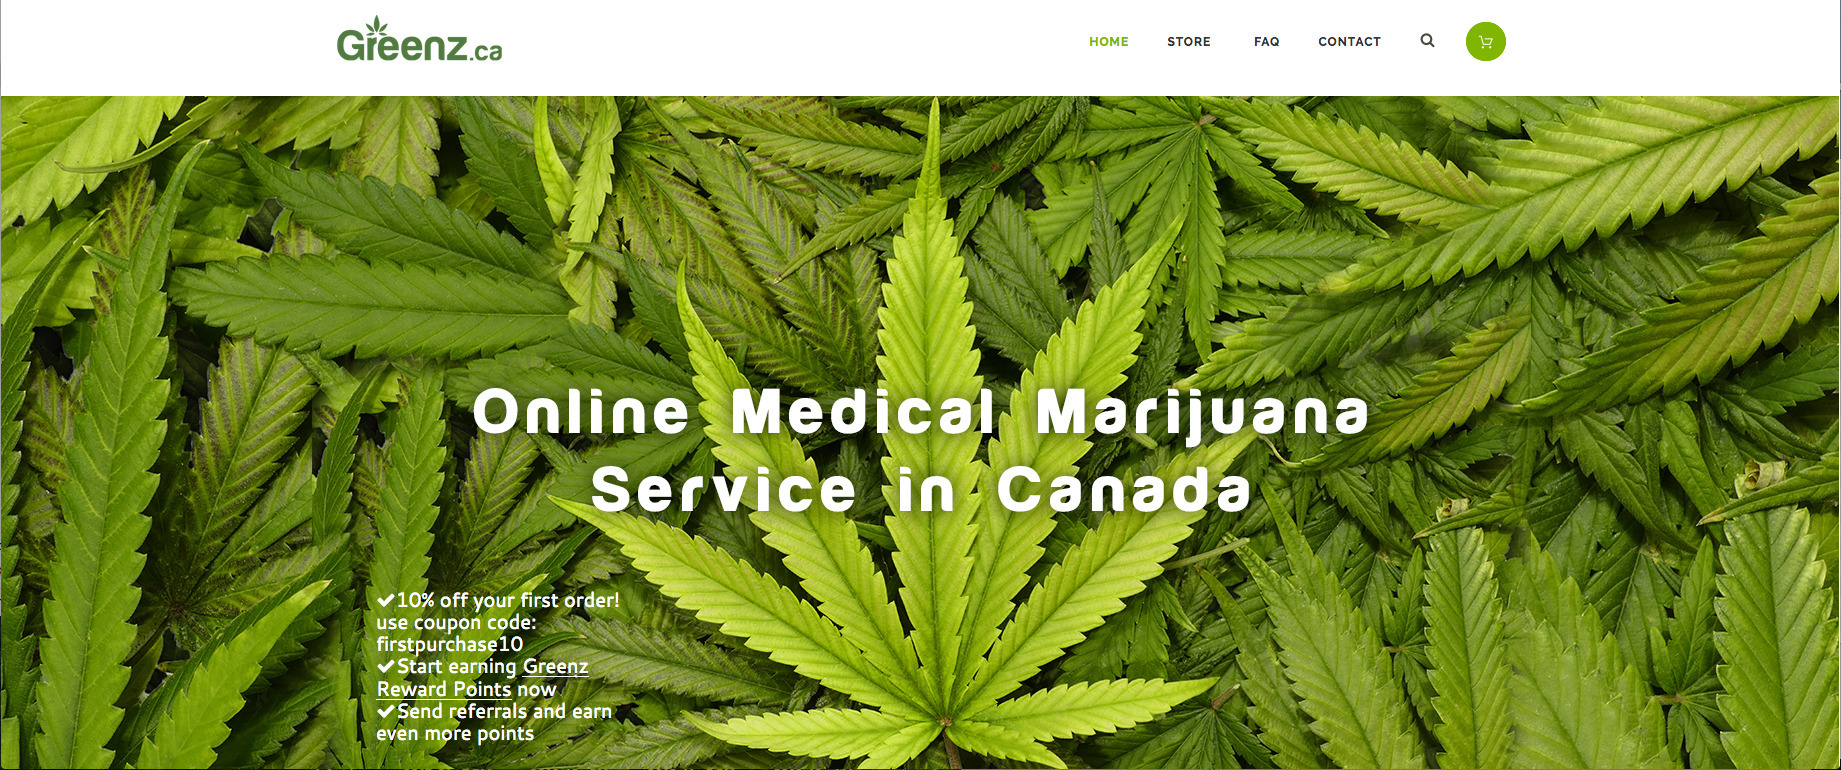 Greenz.ca (@greenz) Cover Image